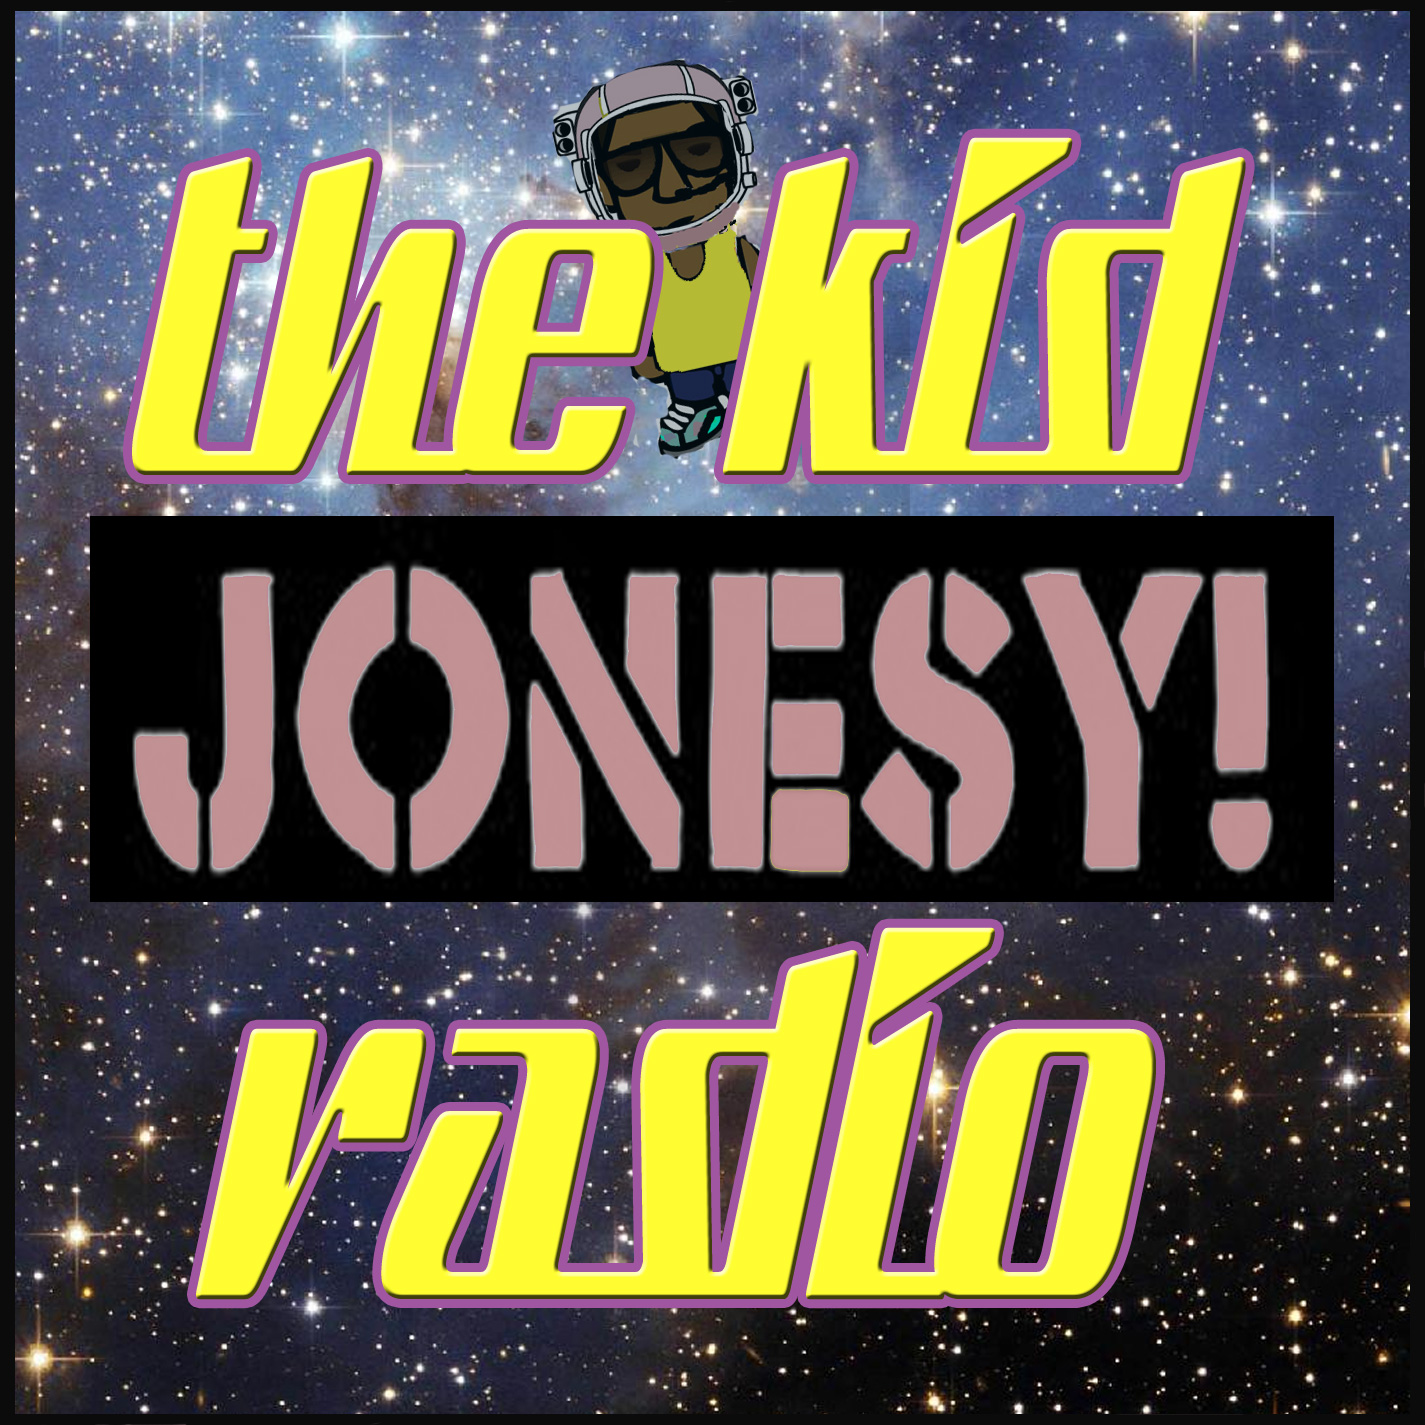 the kid JONESY! Radio. Always Fresh, Always on Time. Based out of NYC, every month we'll bring you live DJ sets from myself and other world-renowned DJs. Taste-Maker music for the young and restless. I am DJ Jonesy! and you're welcome! YUP!!    Subscribe here:  http://itunes.apple.com/us/podcast/the-kid-jonesy-radio/id368094747